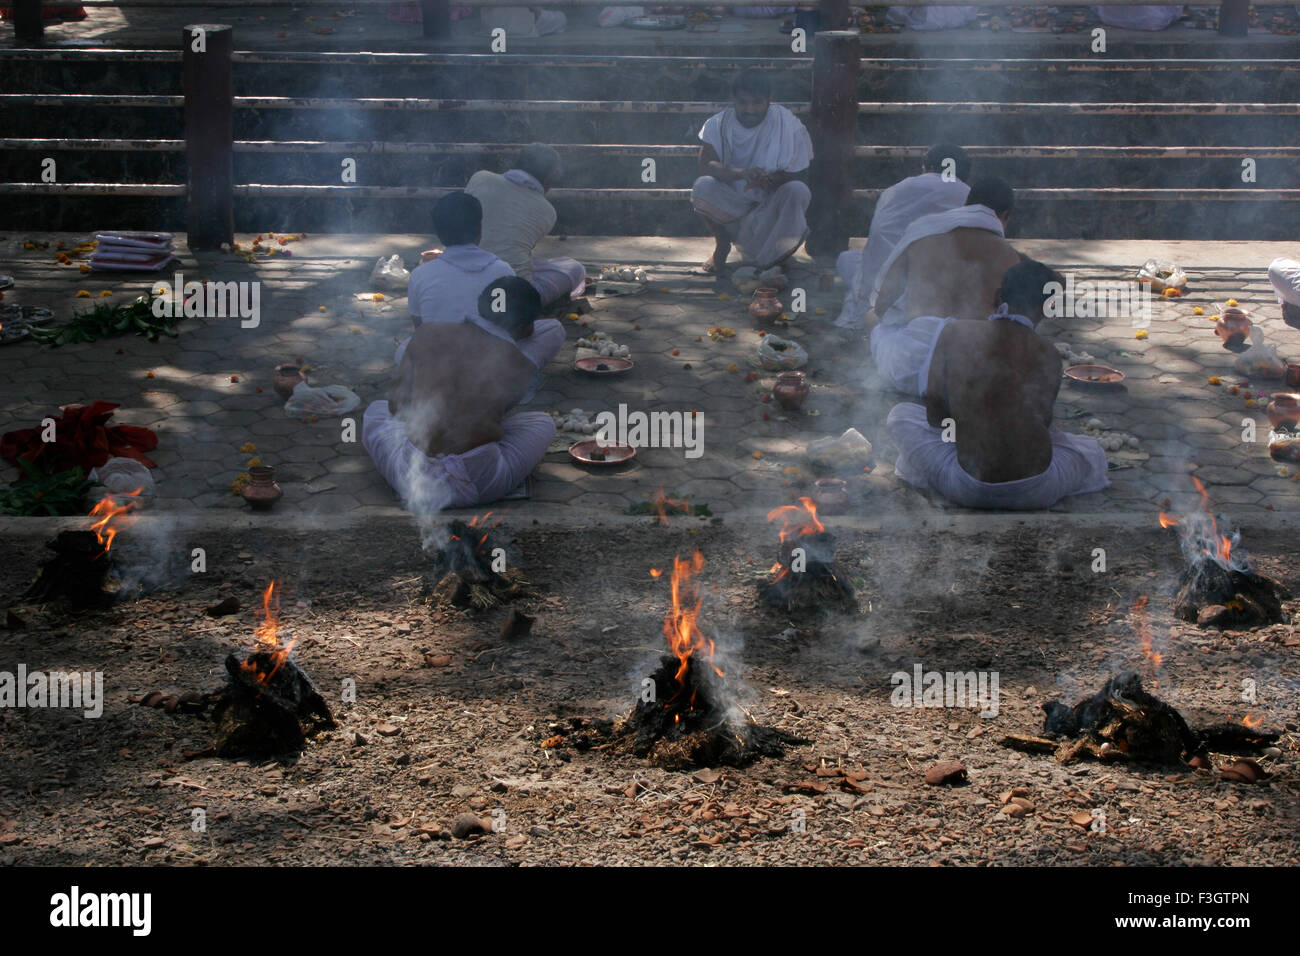 Traditional and customary ceremonies called Shraad Puja performed by seven Indian men amidst fire smoke beloved - Stock Image